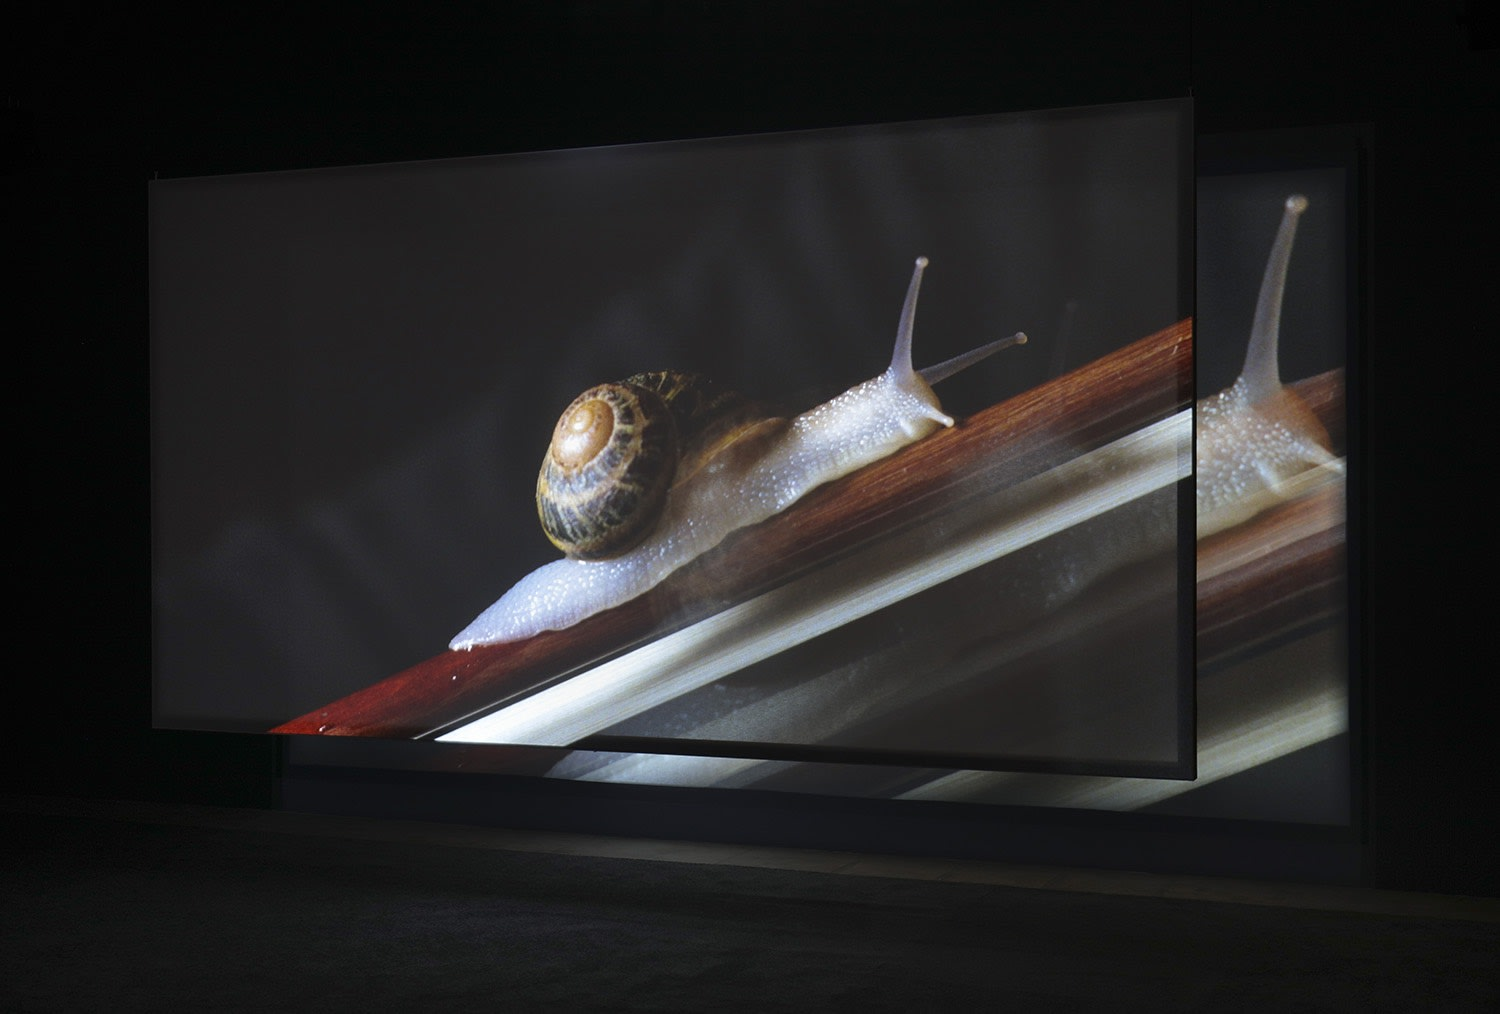 Image of a snail projected onto a screen in a darkened room.